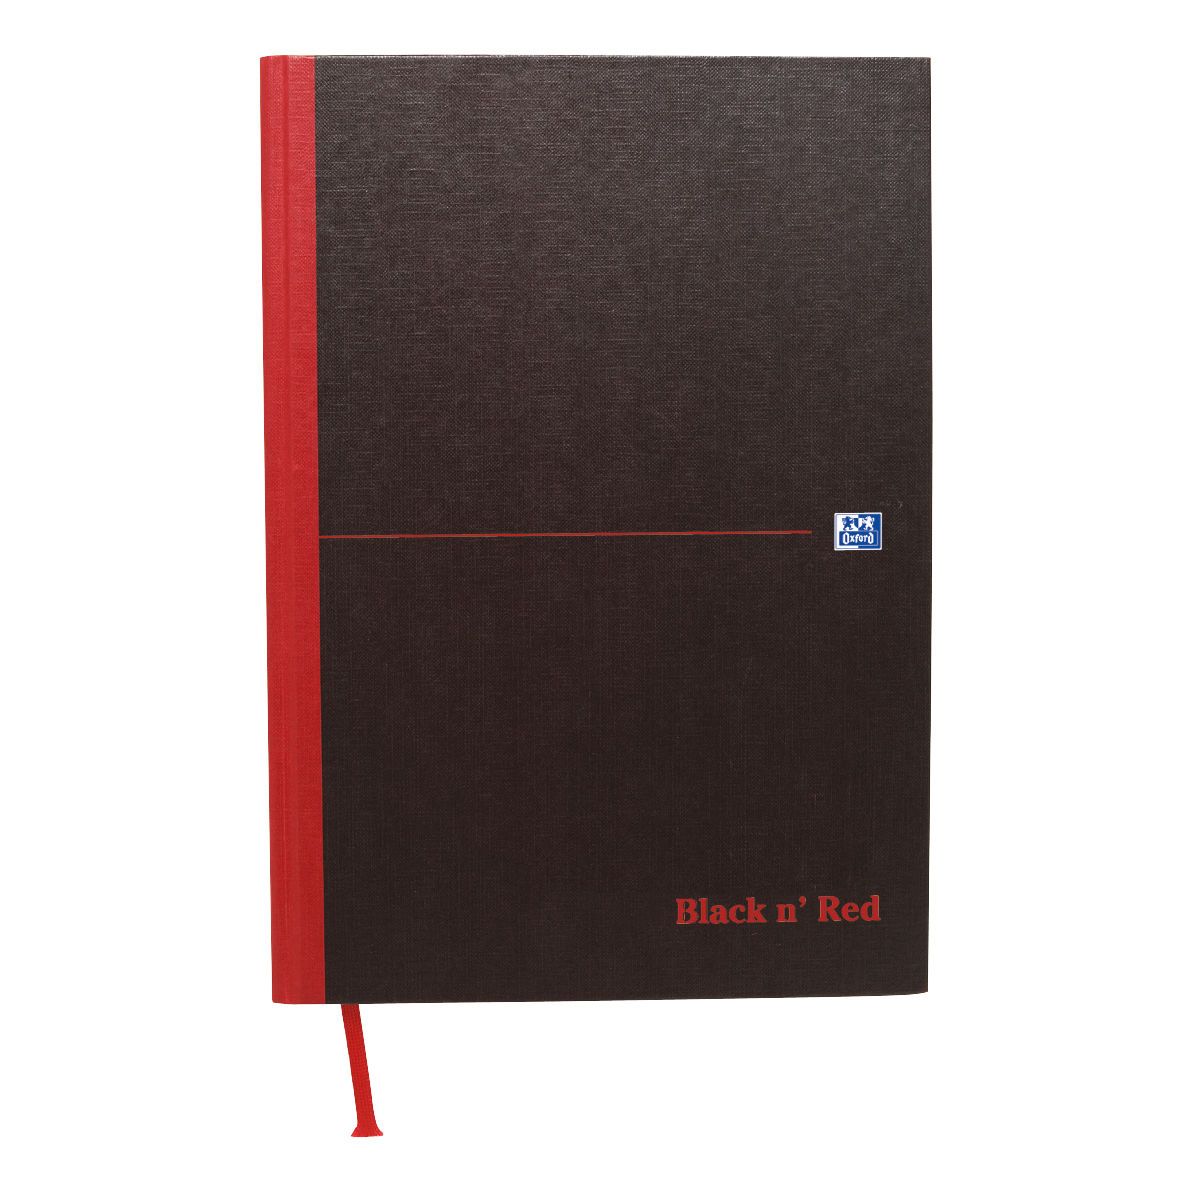 Black n Red Notebook Casebound 90gsm Ruled 384pp A4 Ref 100080473